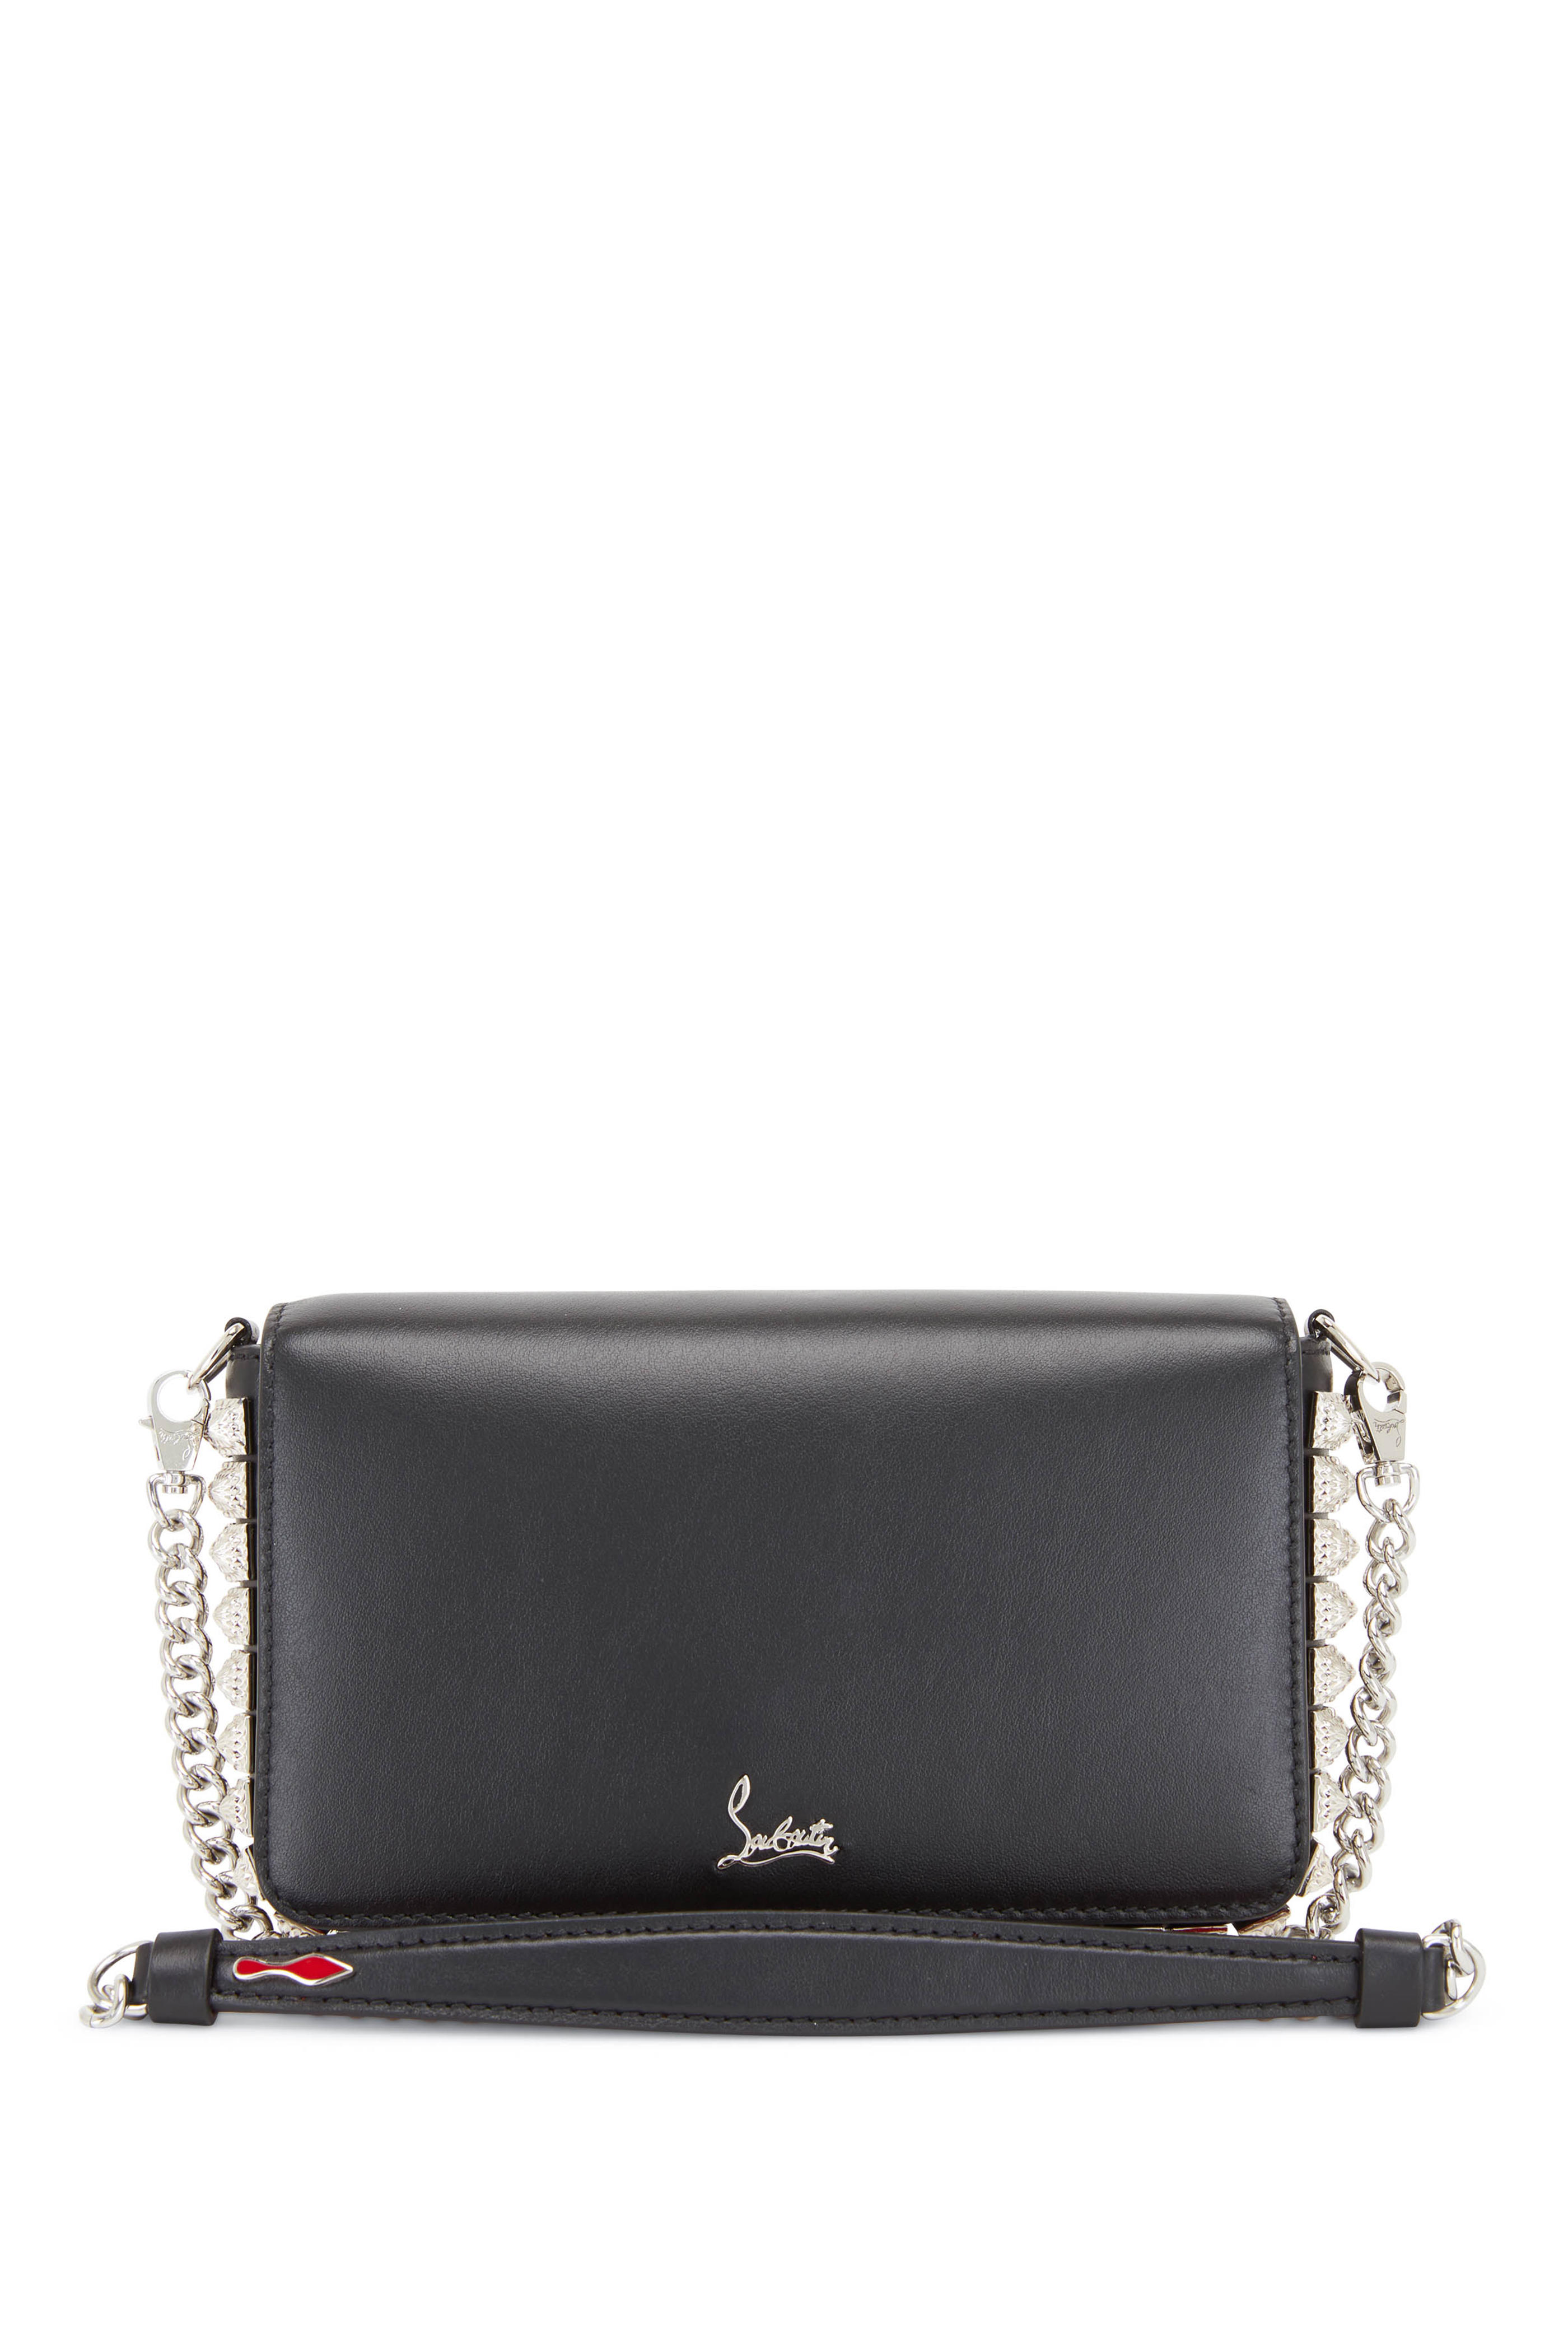 7947e9baacb Christian Louboutin - Zoompouch Black Leather & Silver Spikes ...